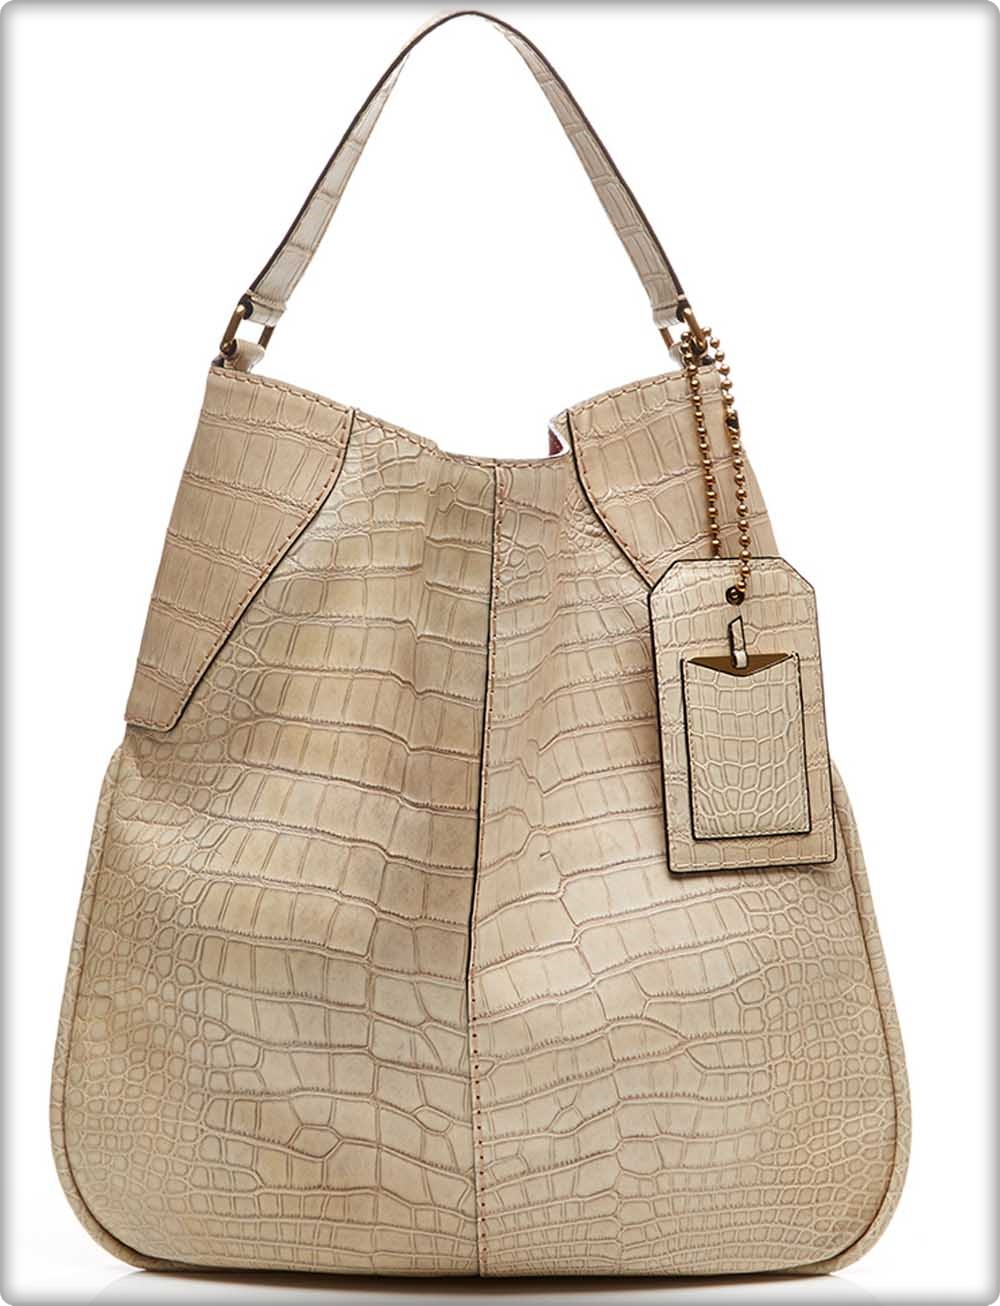 All about Top 12 Most Expensive Handbags In The World - kidskunst.info 77ea922c50